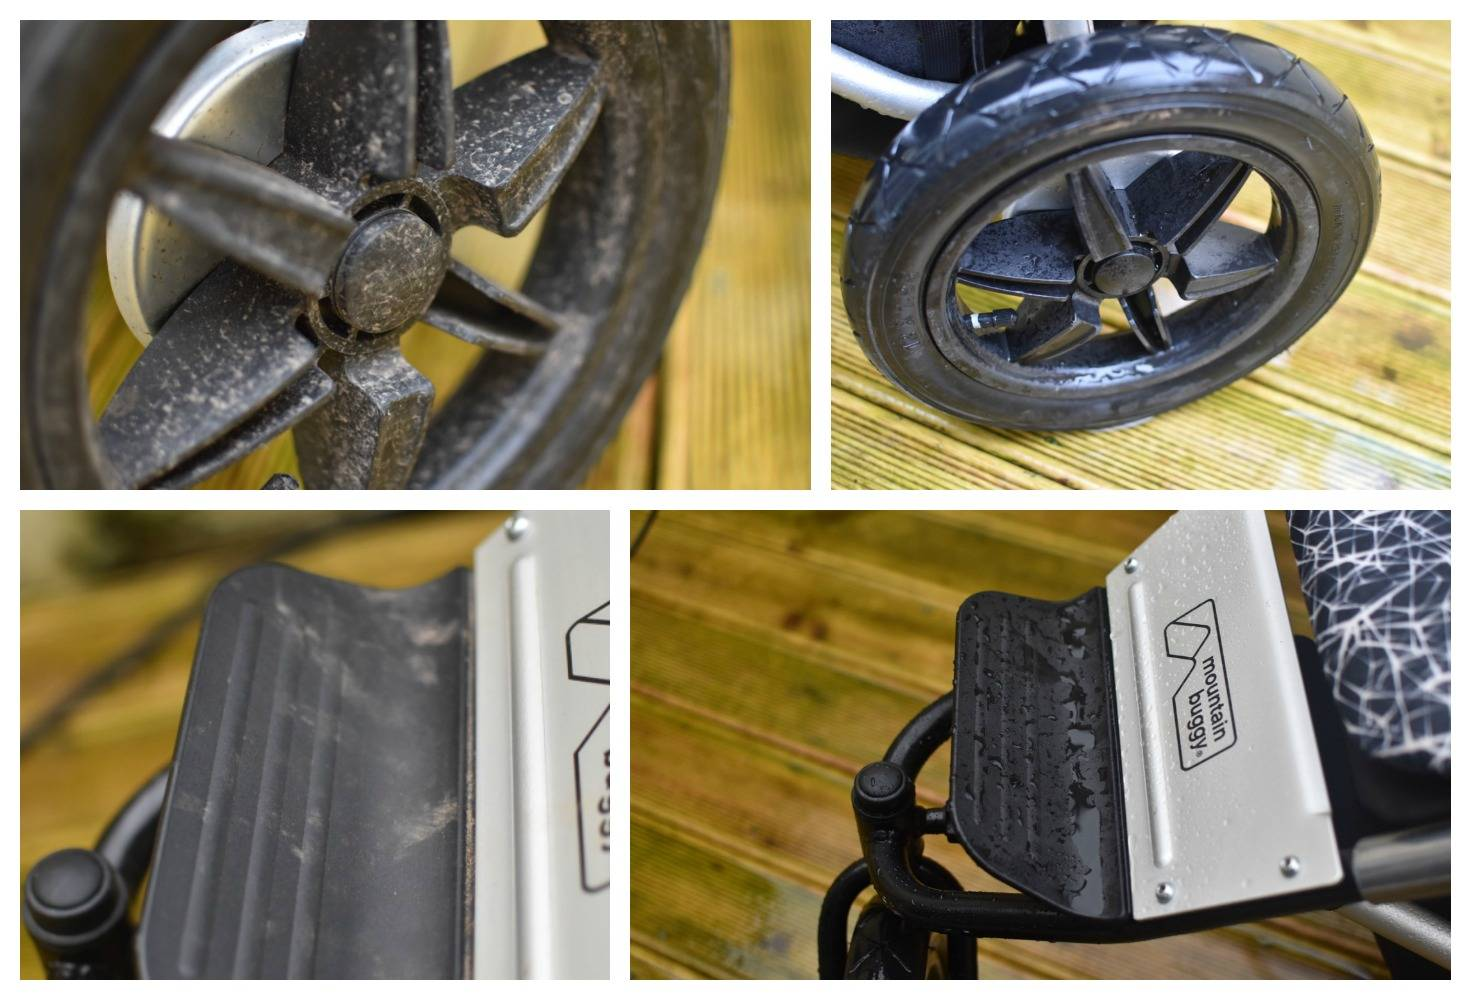 beofre and after photos of the effects on using a power washer on our decking and pushchair